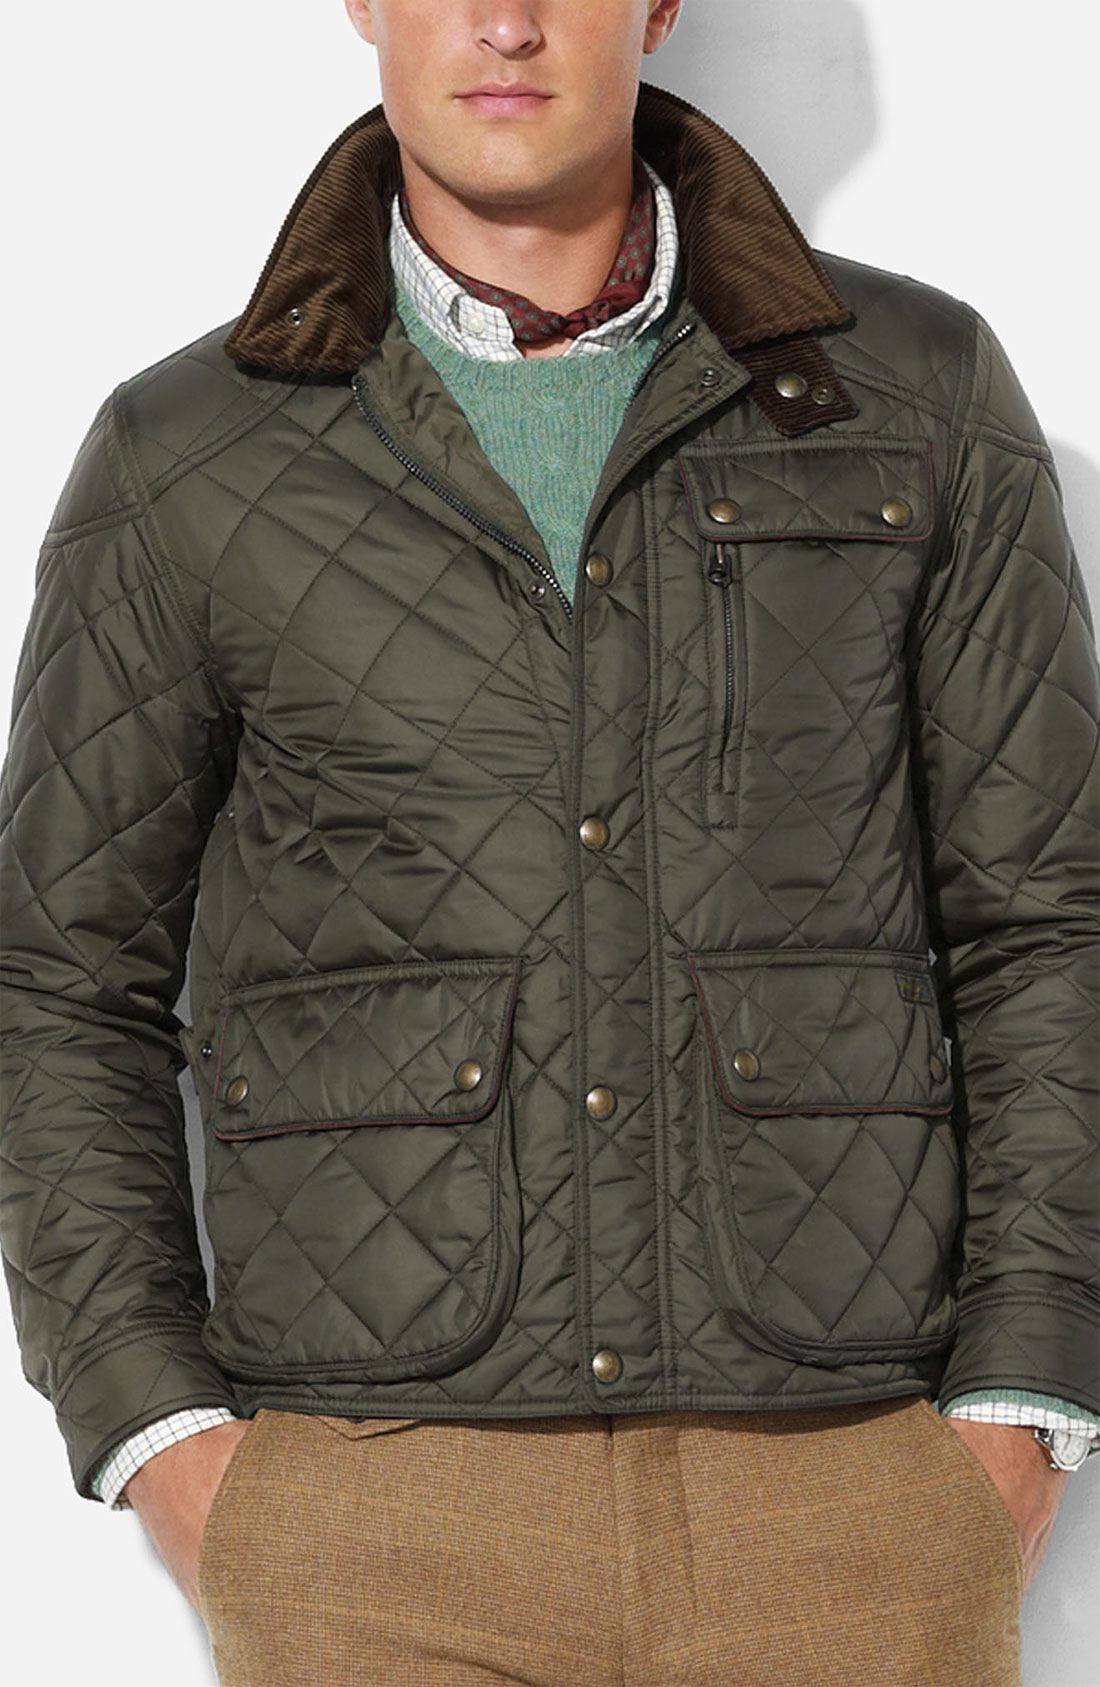 317e5052 men's polo ralph lauren quilted vest - Google Search | Sophisticated ...